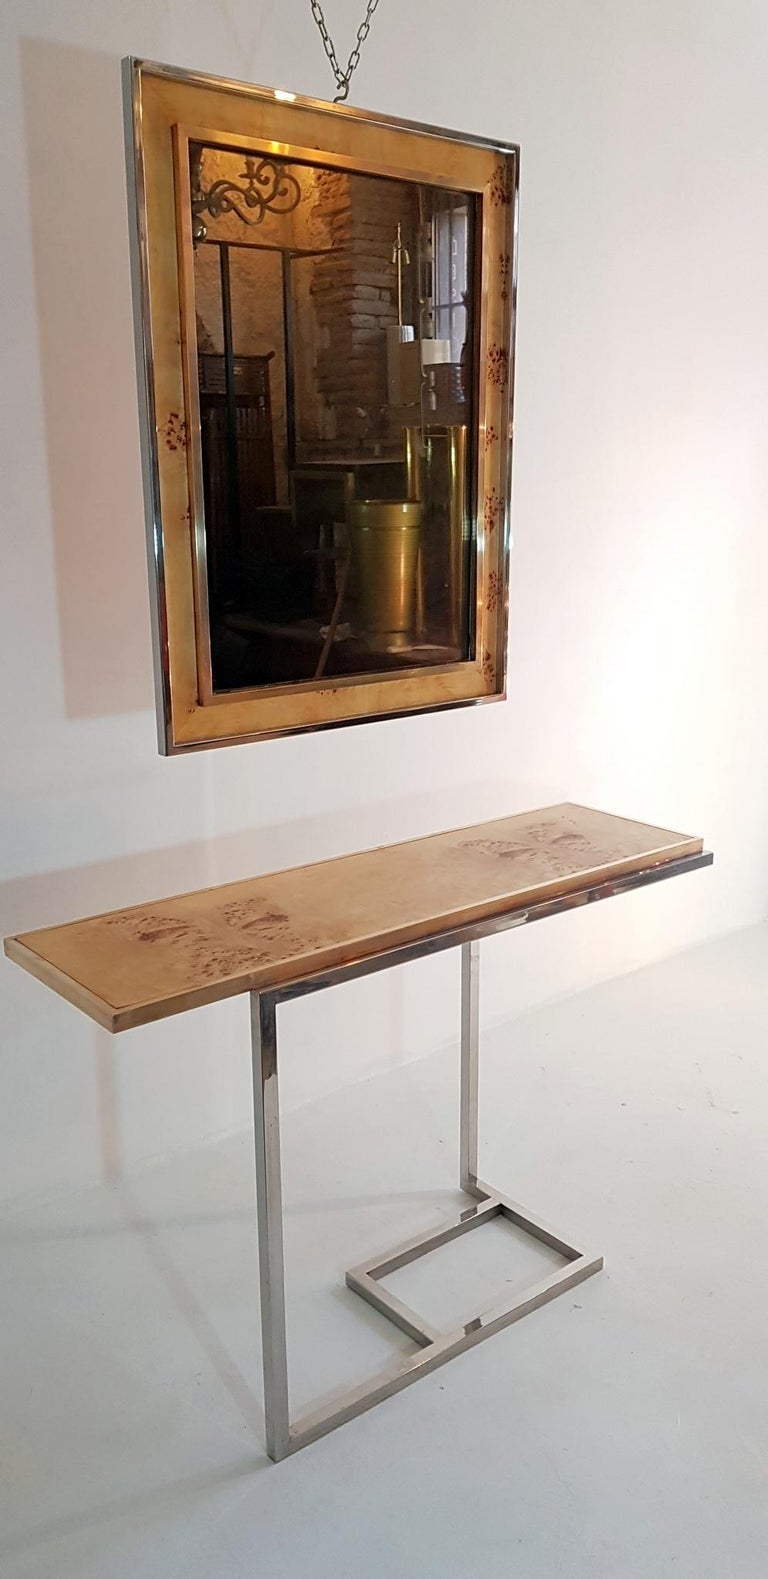 Console and Mirror in Burl Wood, Chrome and Brass 8